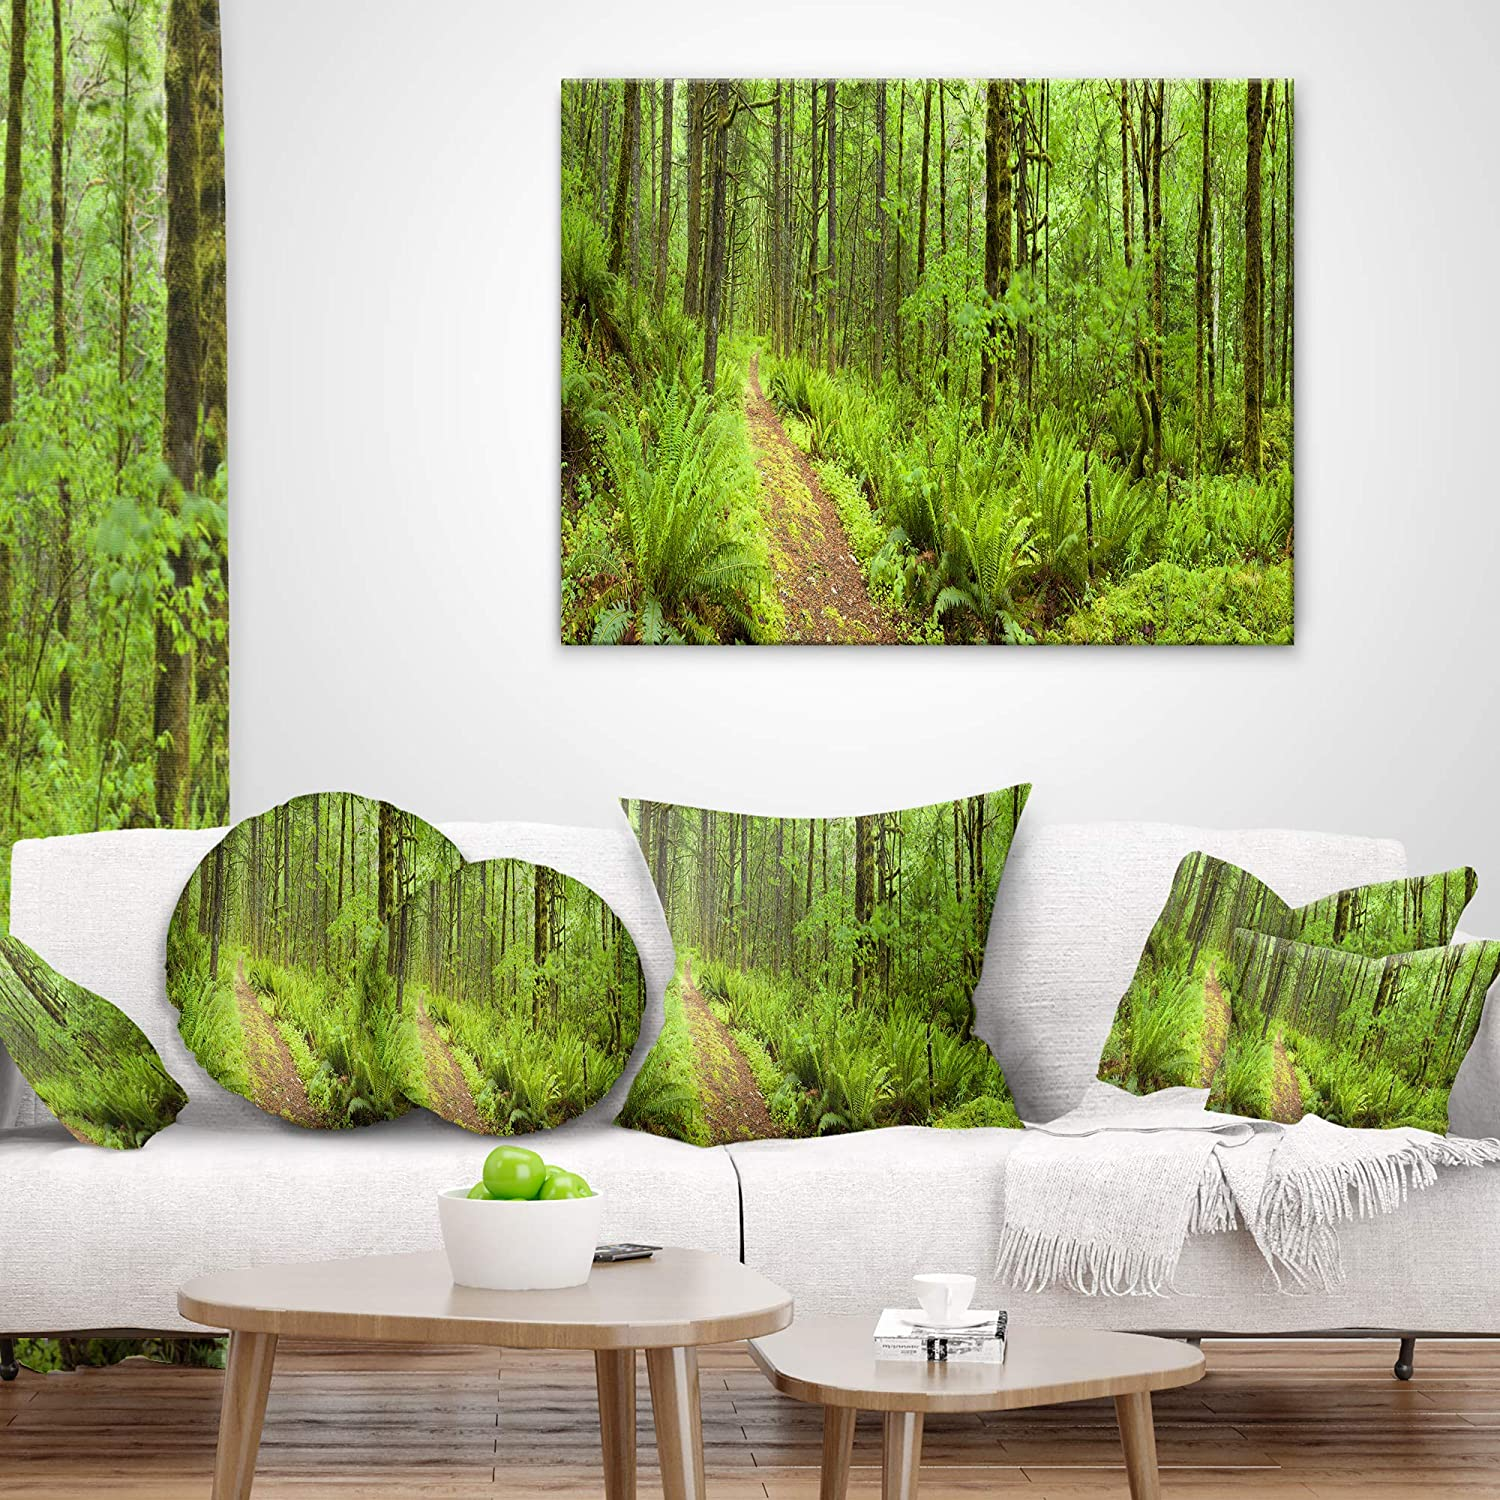 Designart CU11137-26-26 Lush Path Columbia River Forest Cushion Cover for Living Room x 26 in Insert Printed On Both Side in Sofa Throw Pillow 26 in